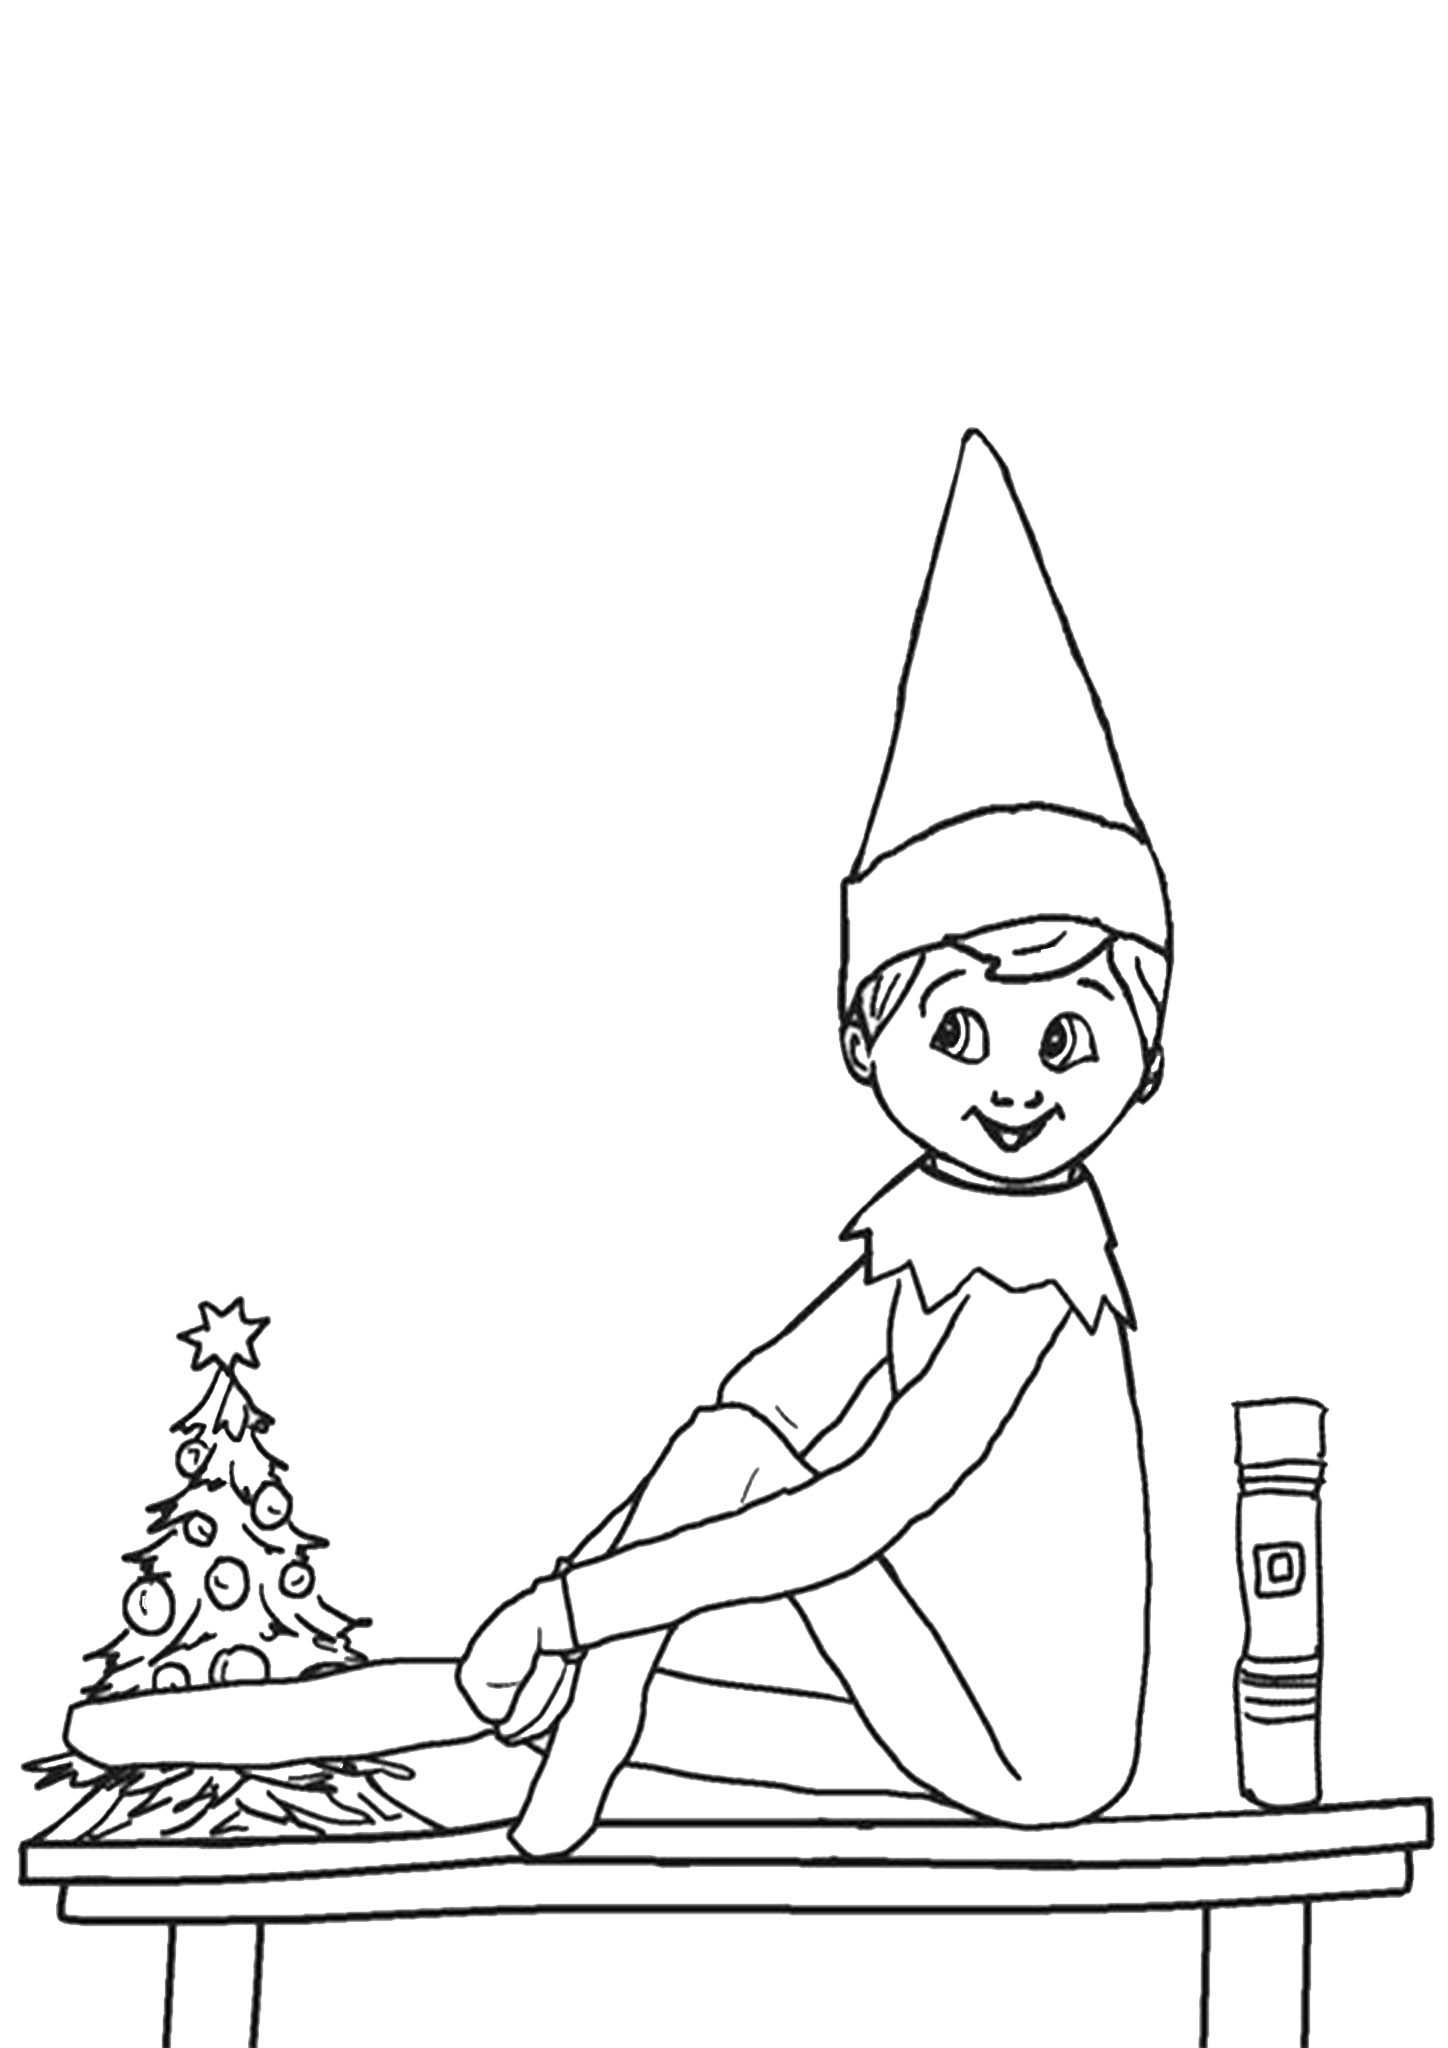 Free Printable Elf On The Shelf Coloring Pages Valentines Day Coloring Page Coloring Pages Easter Coloring Pages